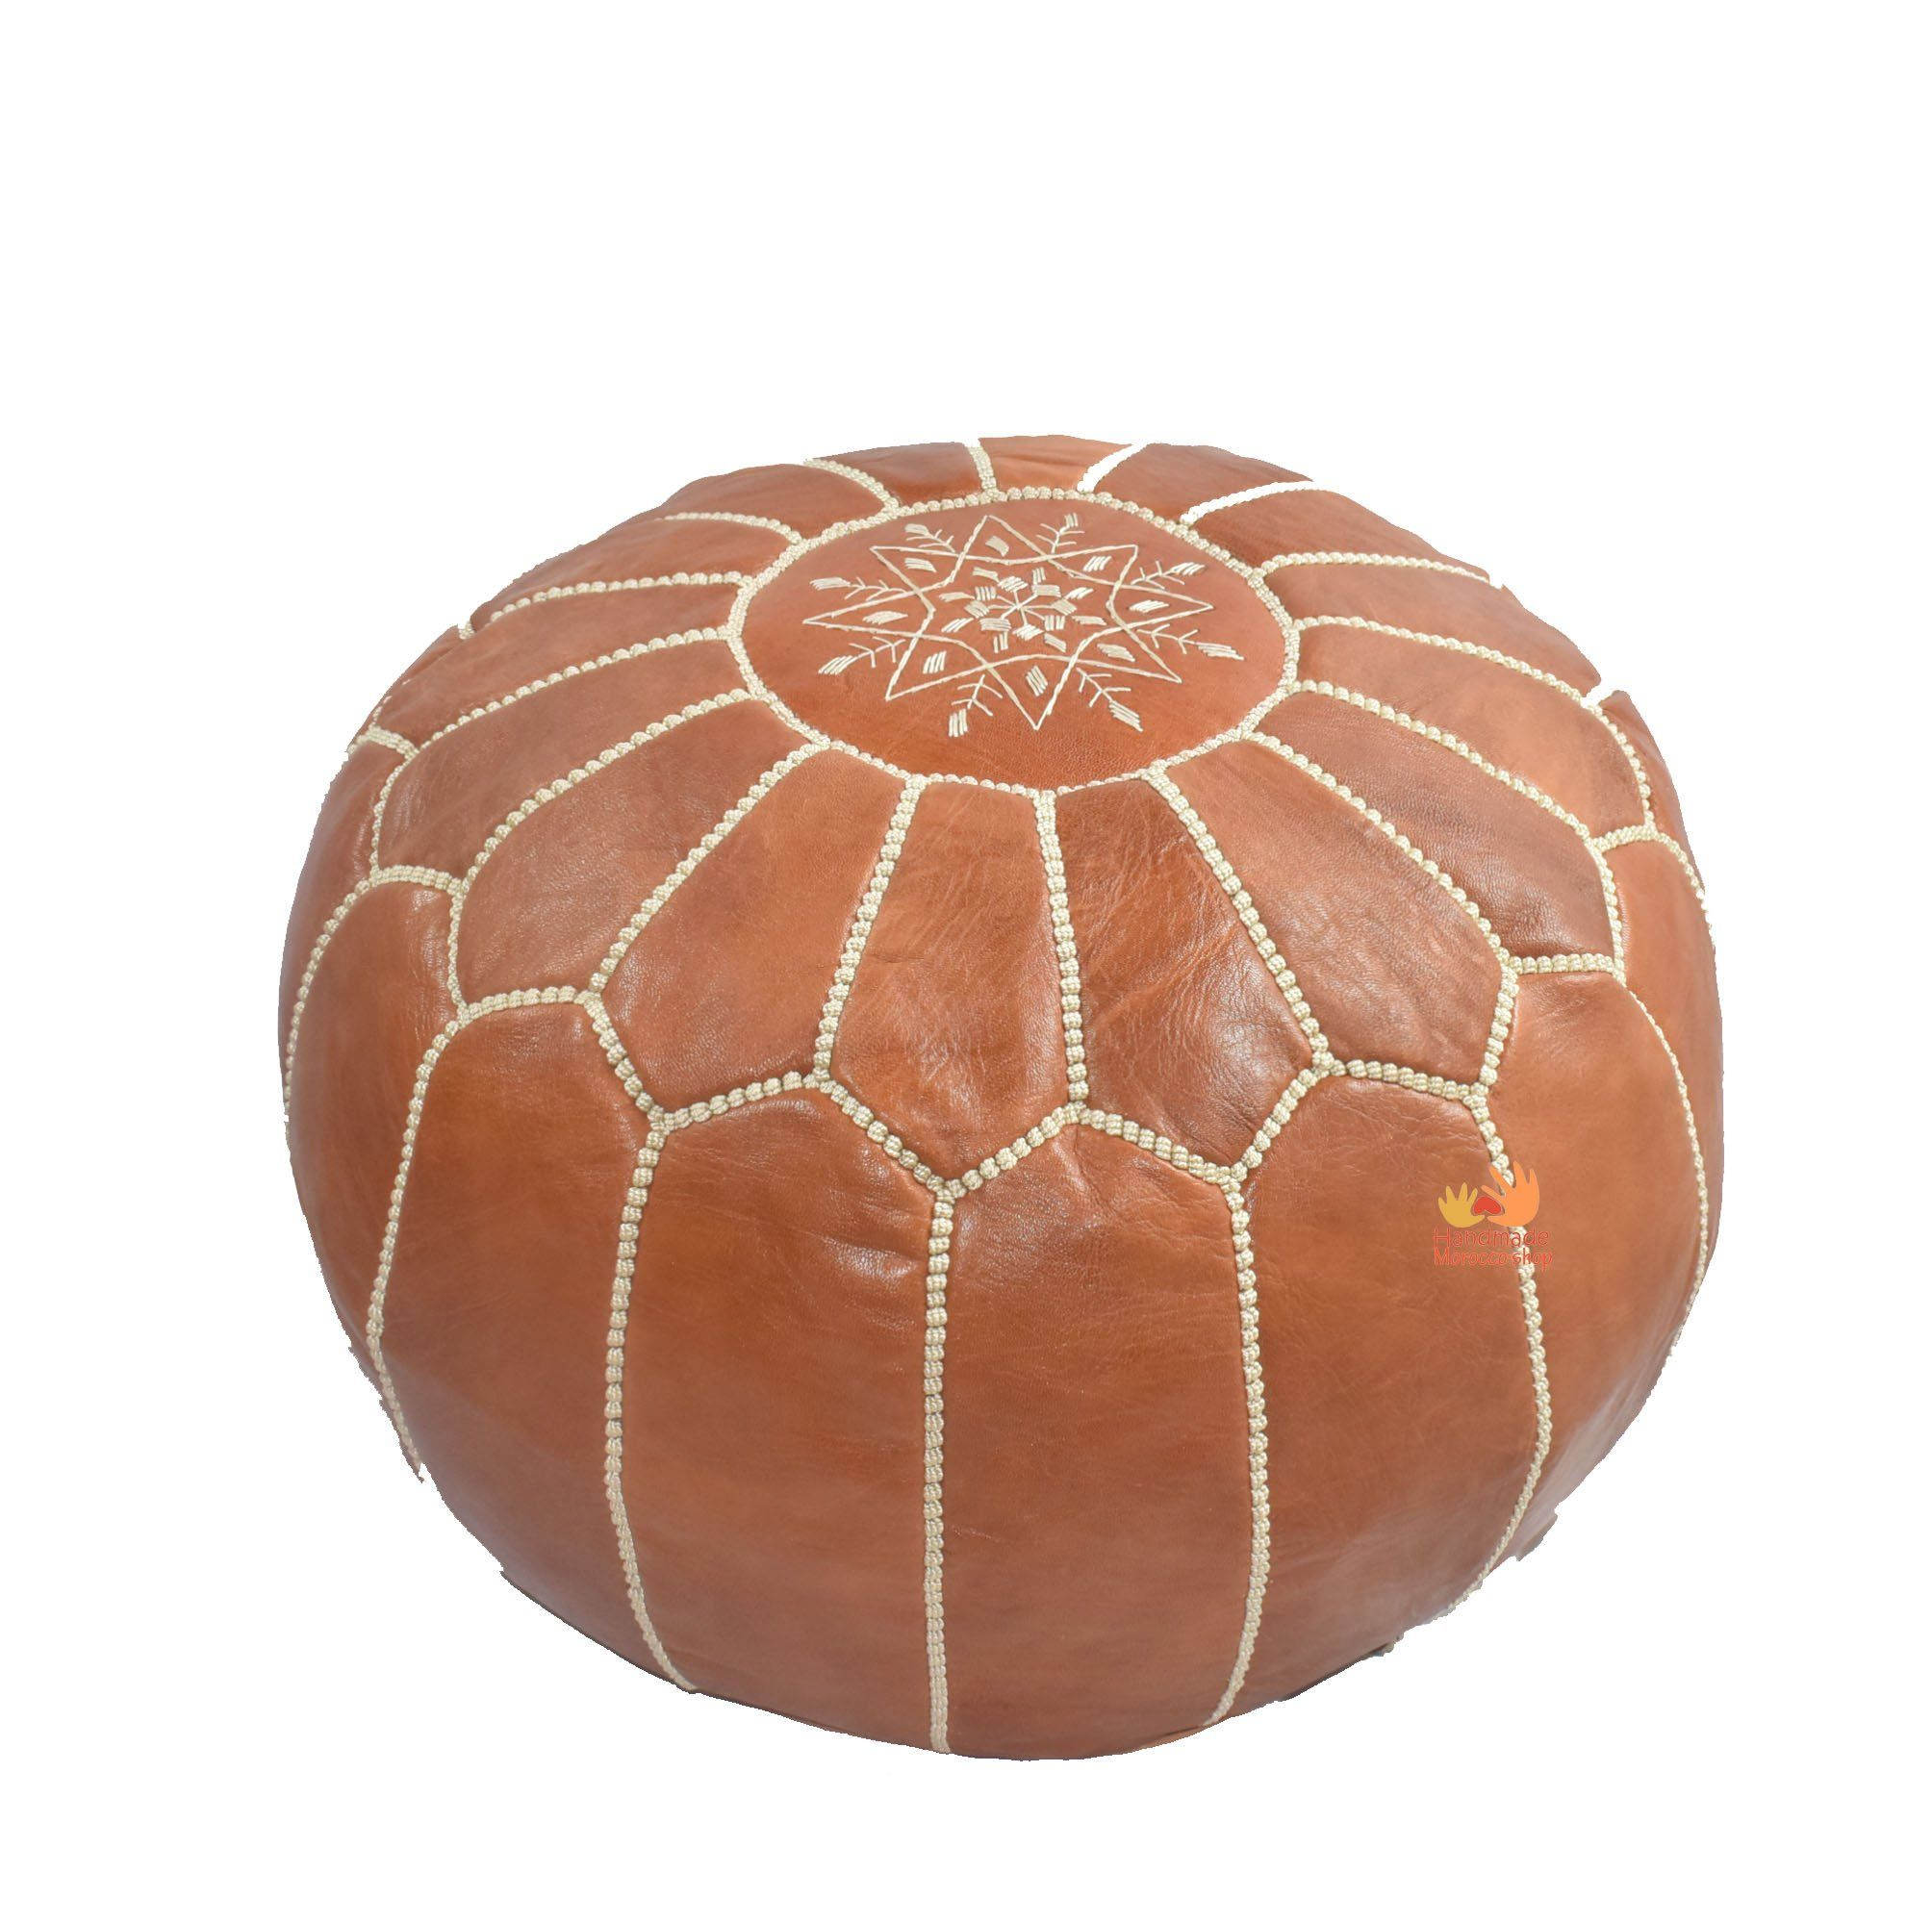 Premium Luxe Moroccan Leather Ottoman Pouffe Pouf Footstool In Tan